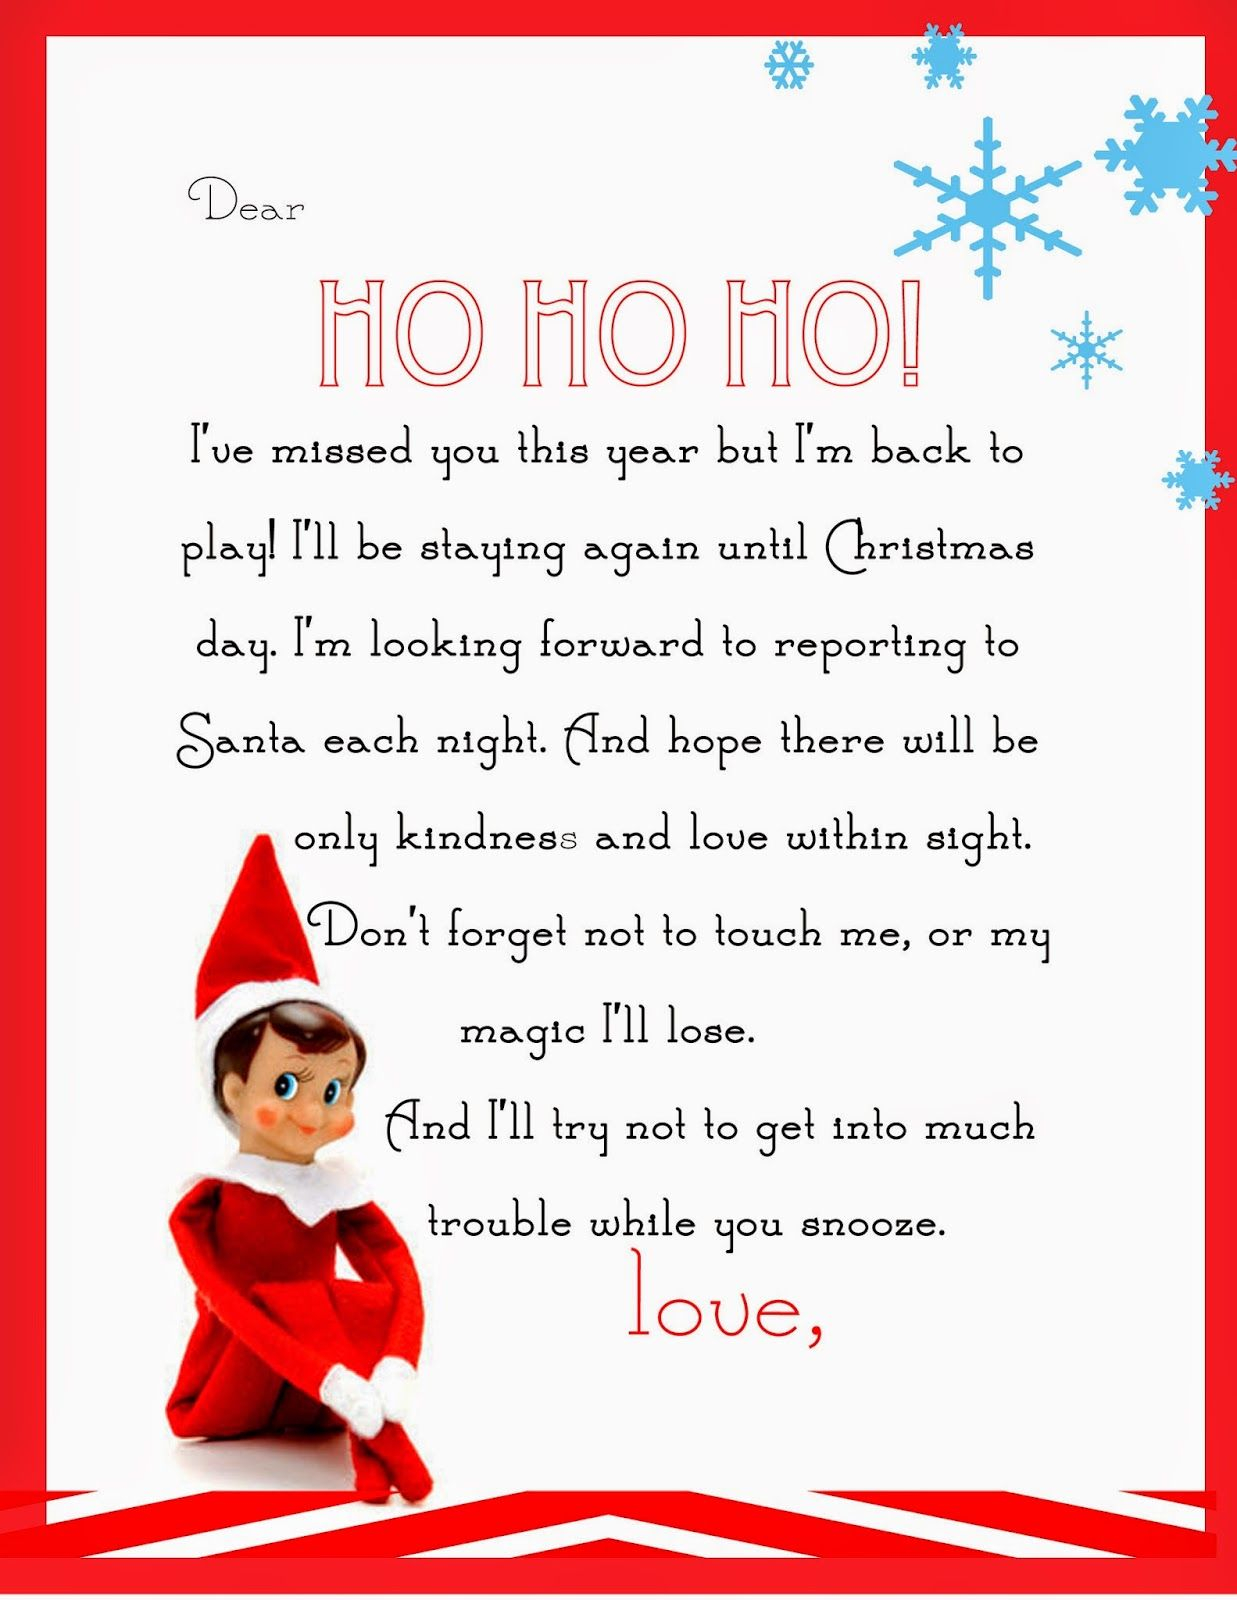 elf on the shelf letter template example-Elf on the Shelf Letter free printable 12-t